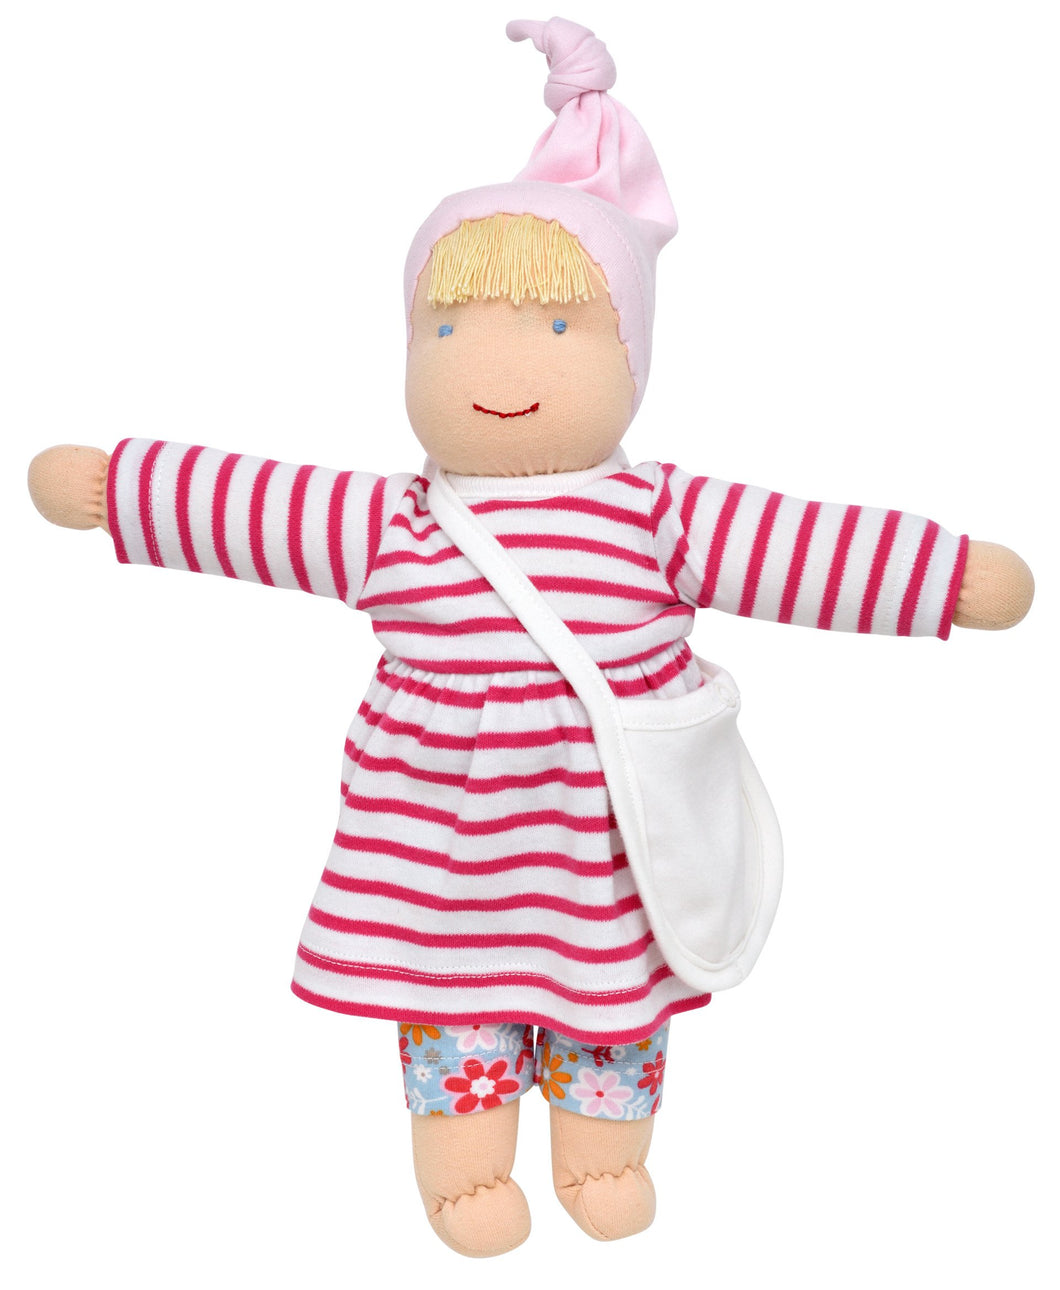 Hazel Dress Up Doll